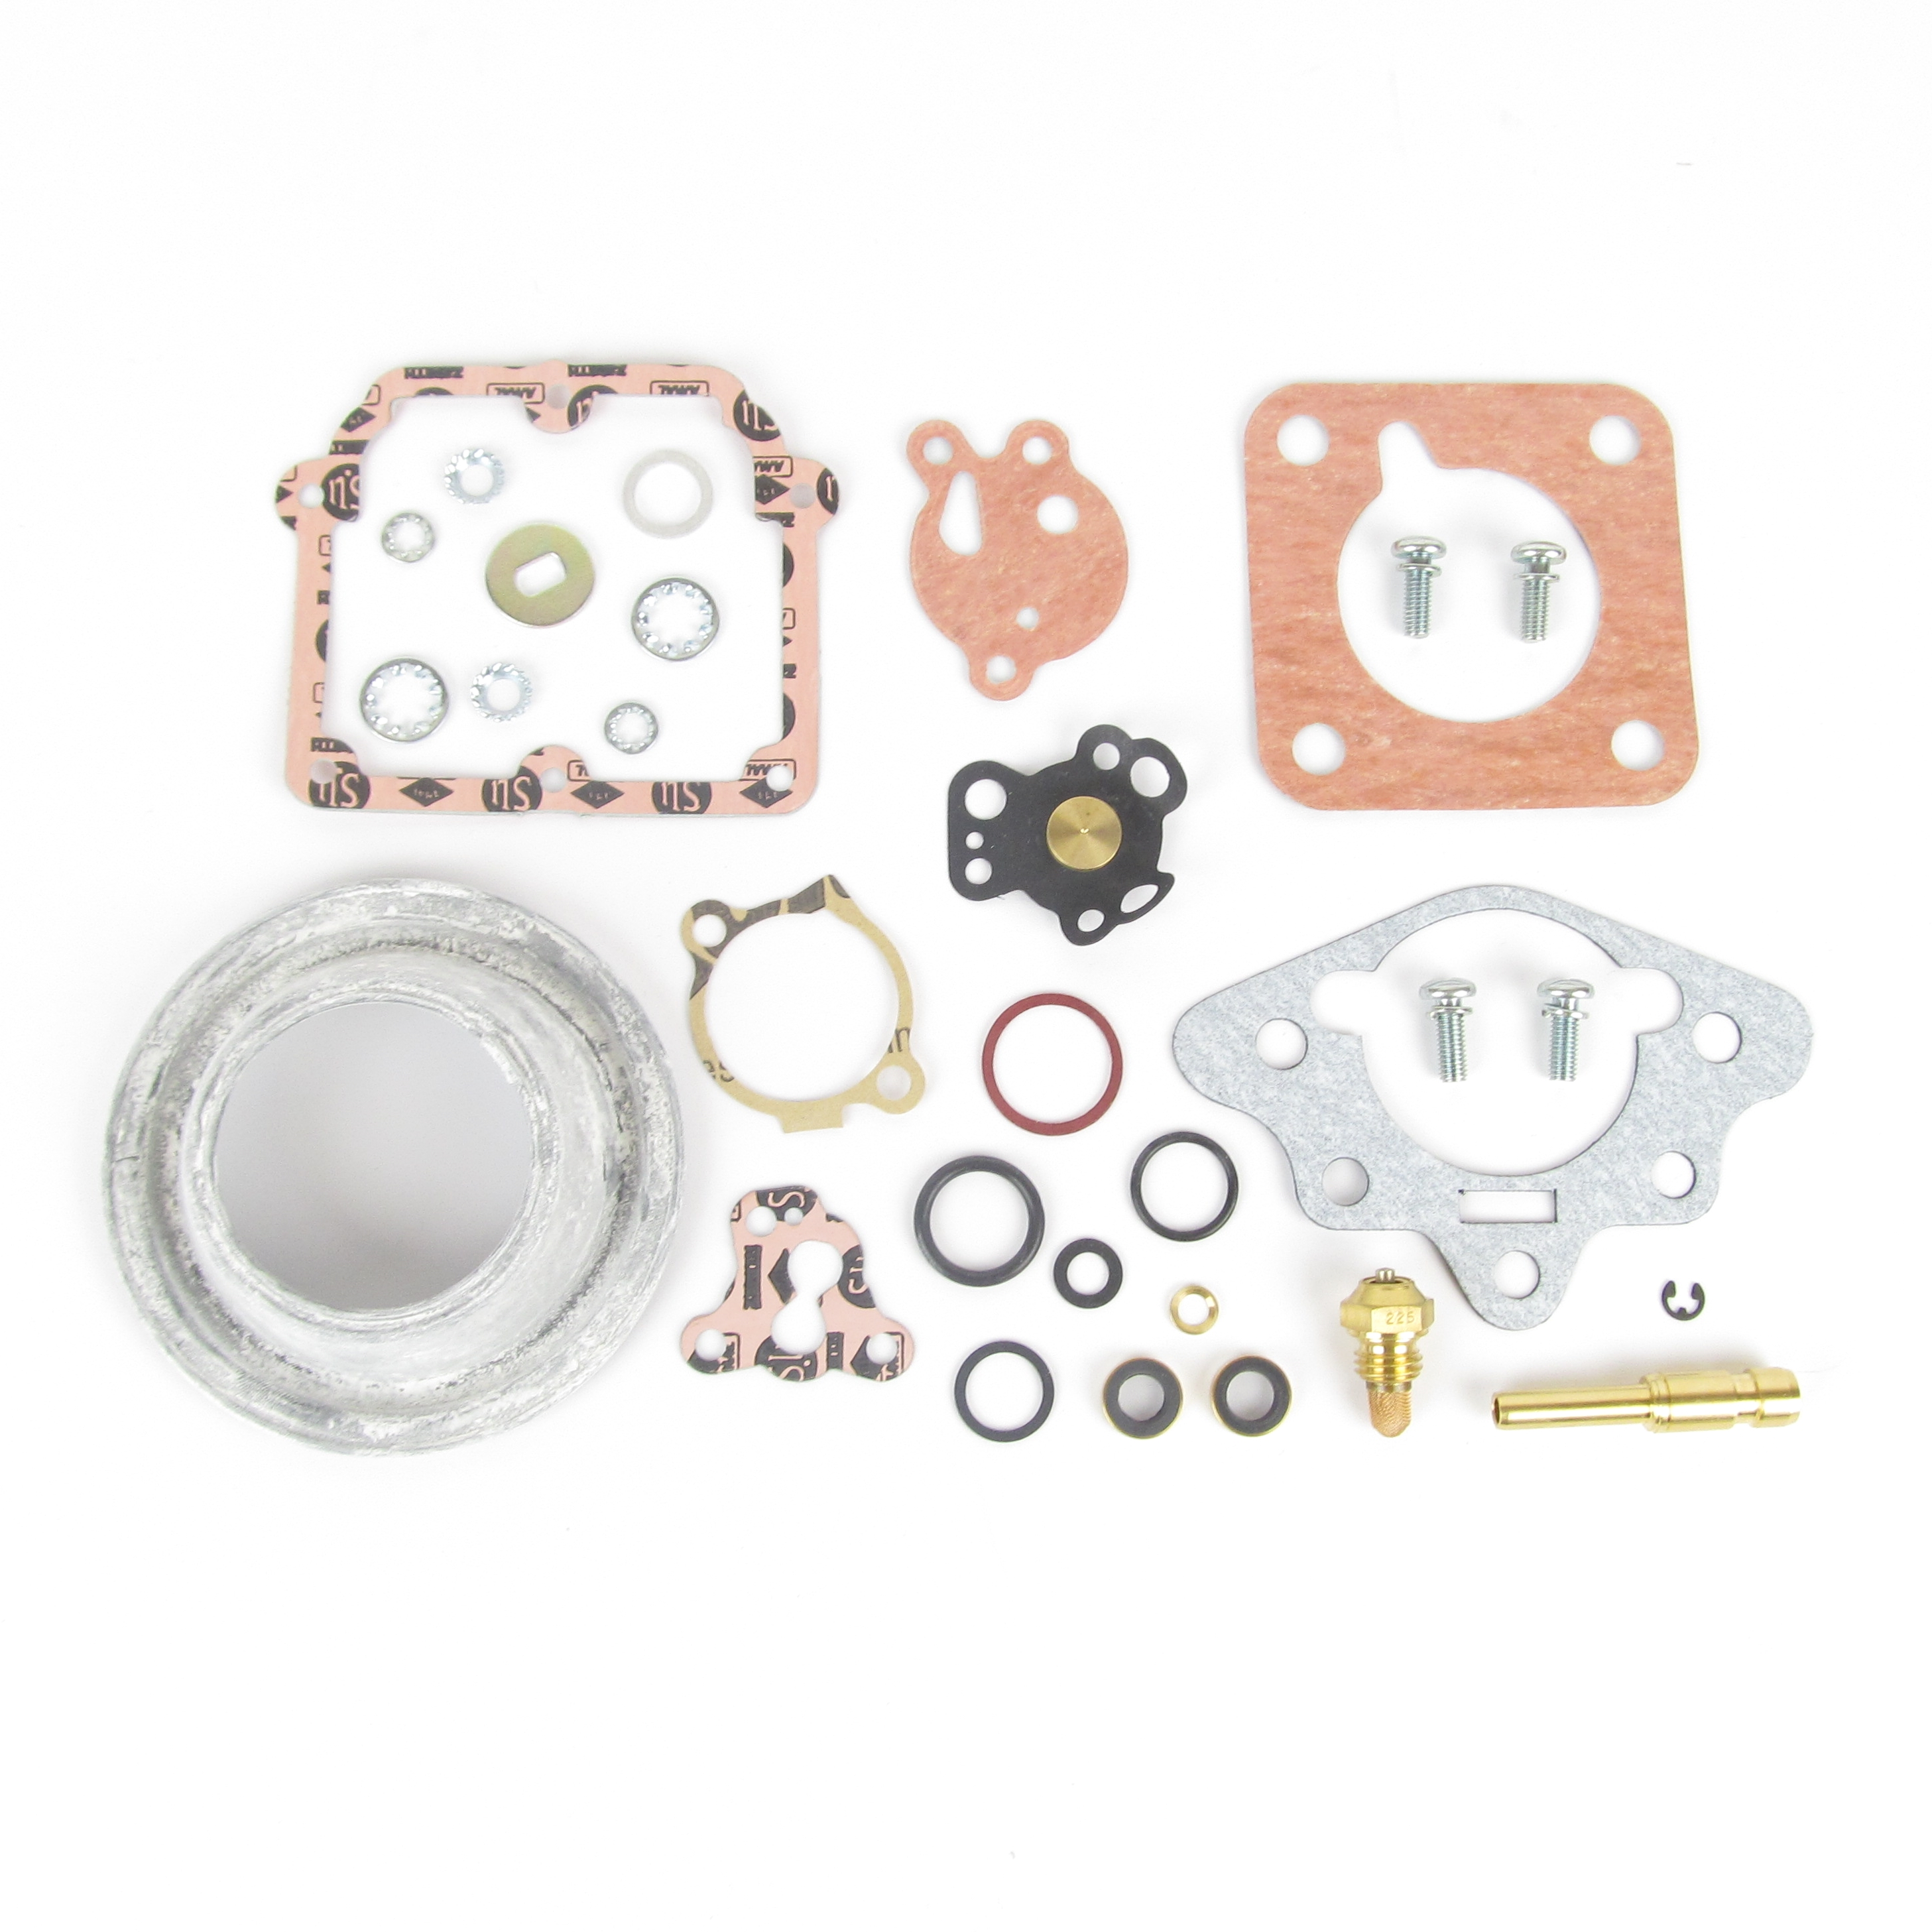 Fuel Injection Throttle Body-Assembly TechSmart S20006